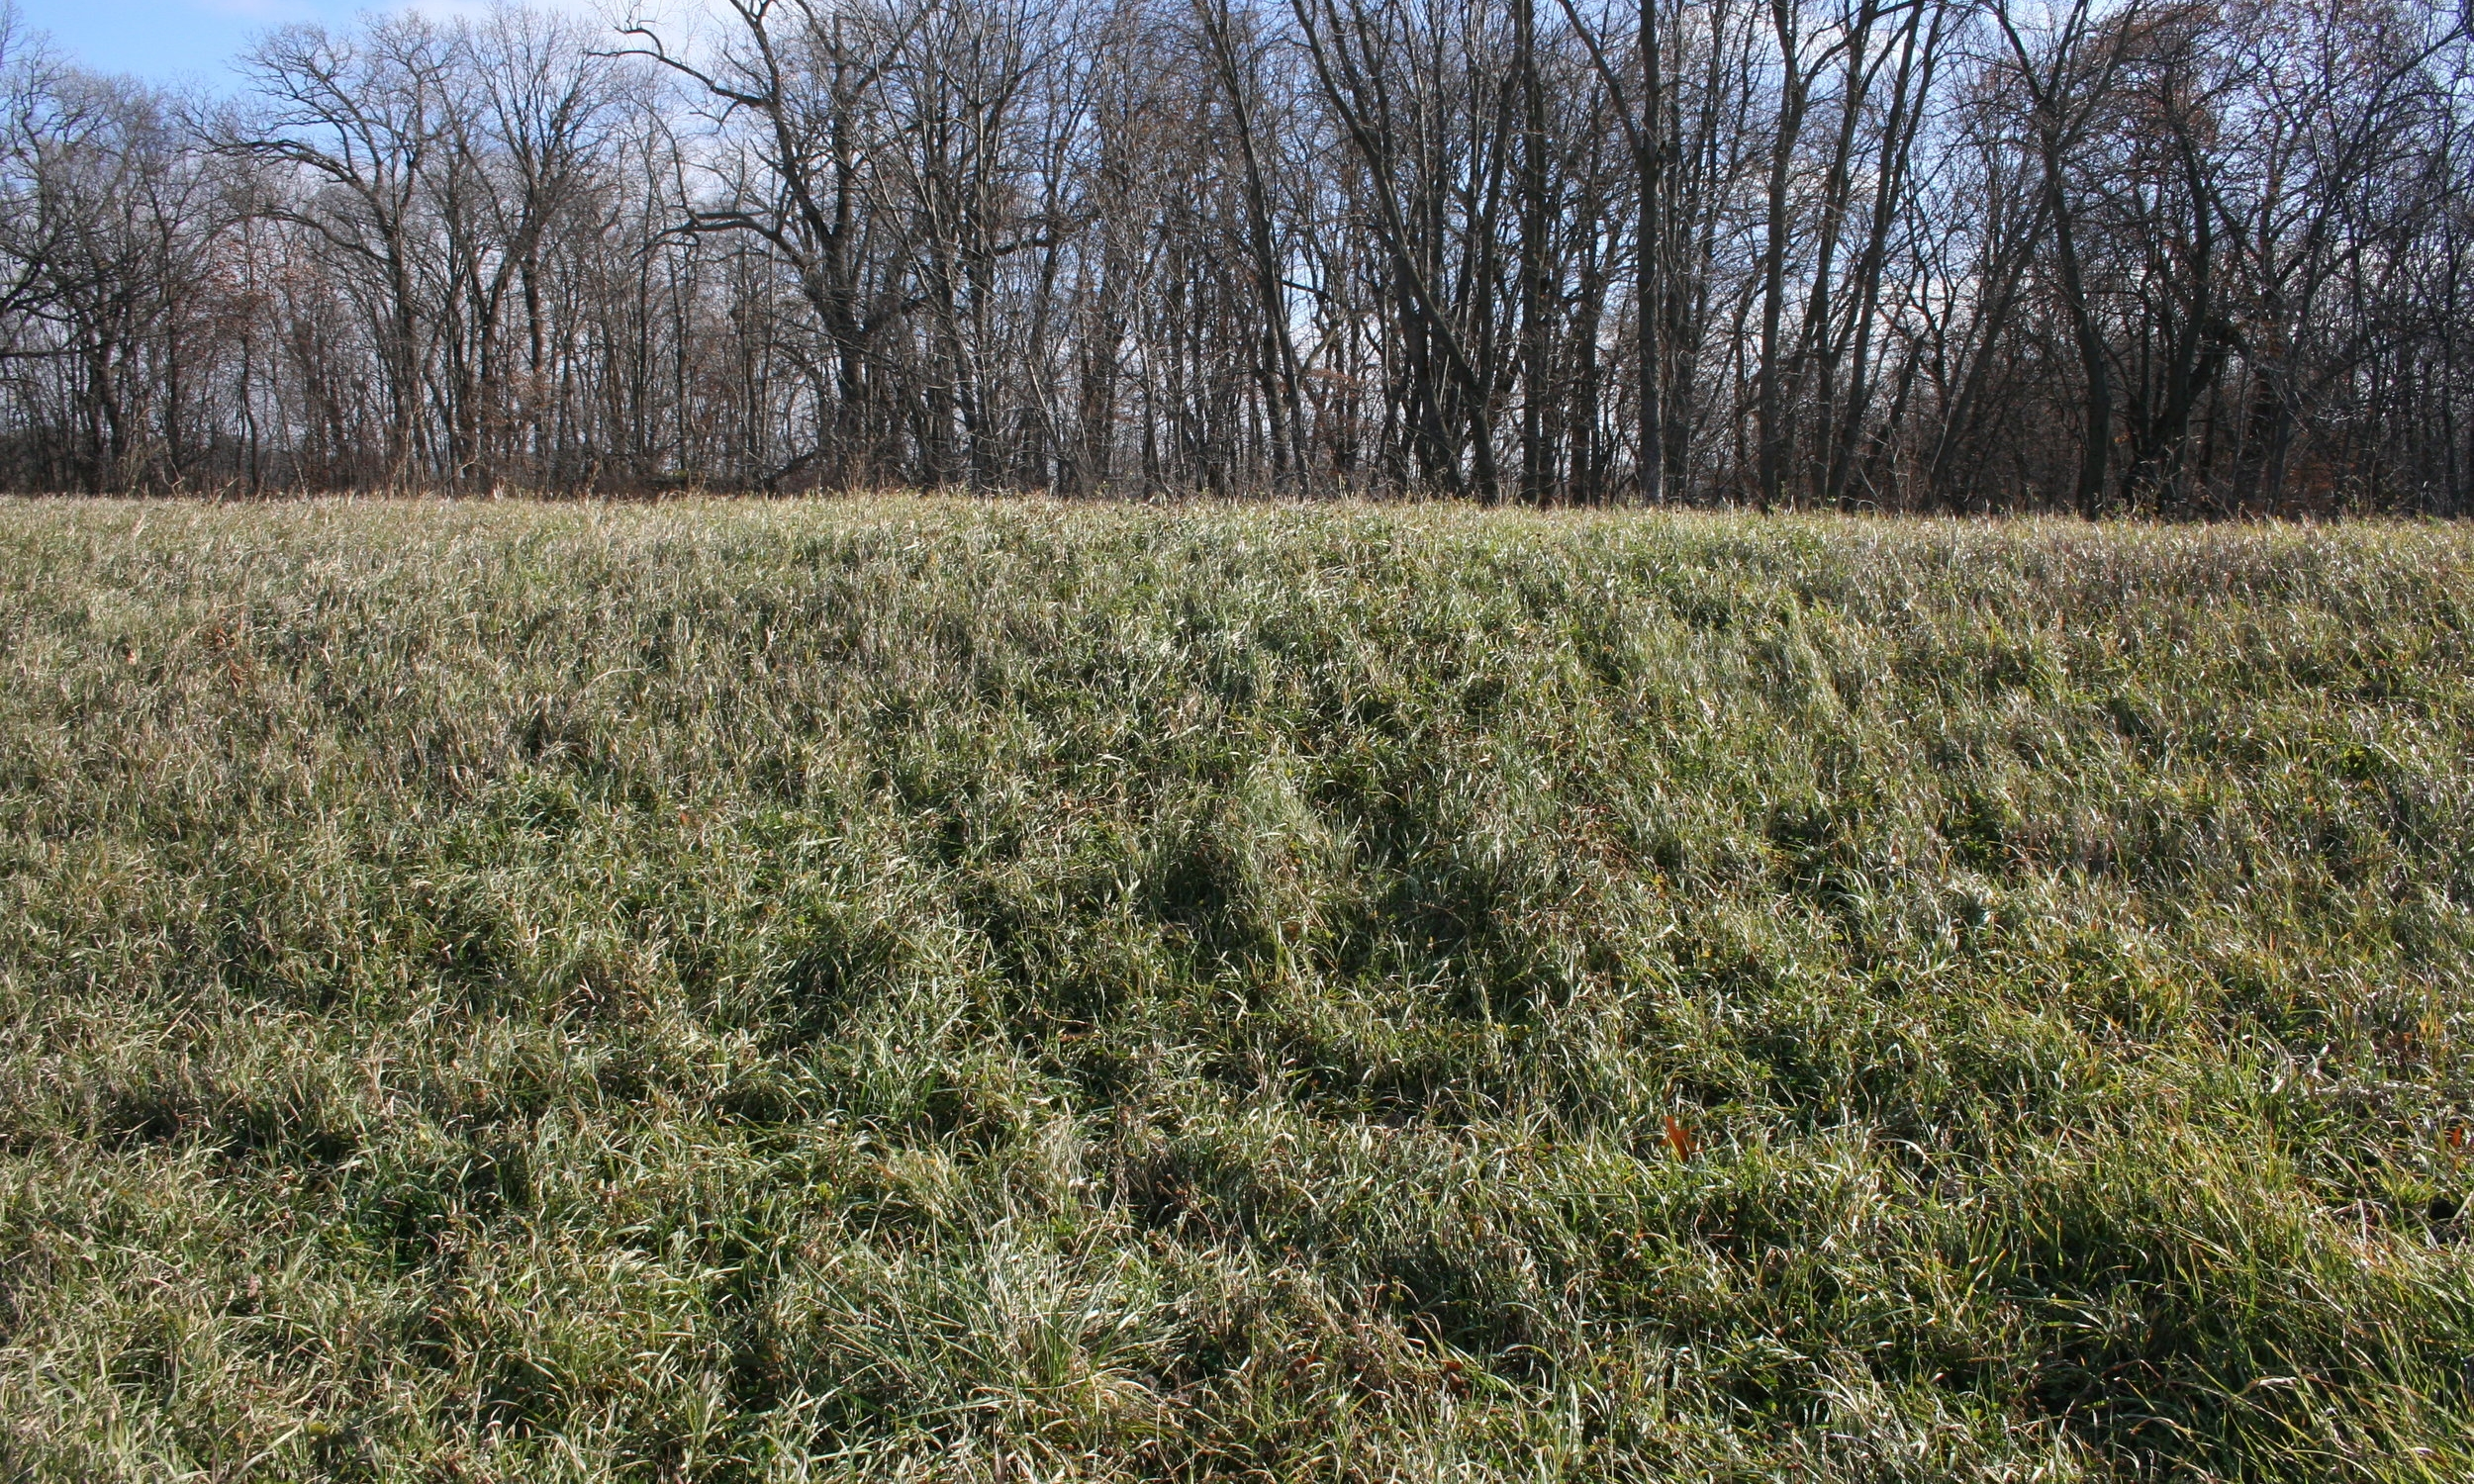 This berm used to be part of a large ravine where soil and sediment would wash out during heavy rains. To prevent this from happening and keep his soil and nutrients on his field, this farmer built a berm with a tile inlet at the bottom.